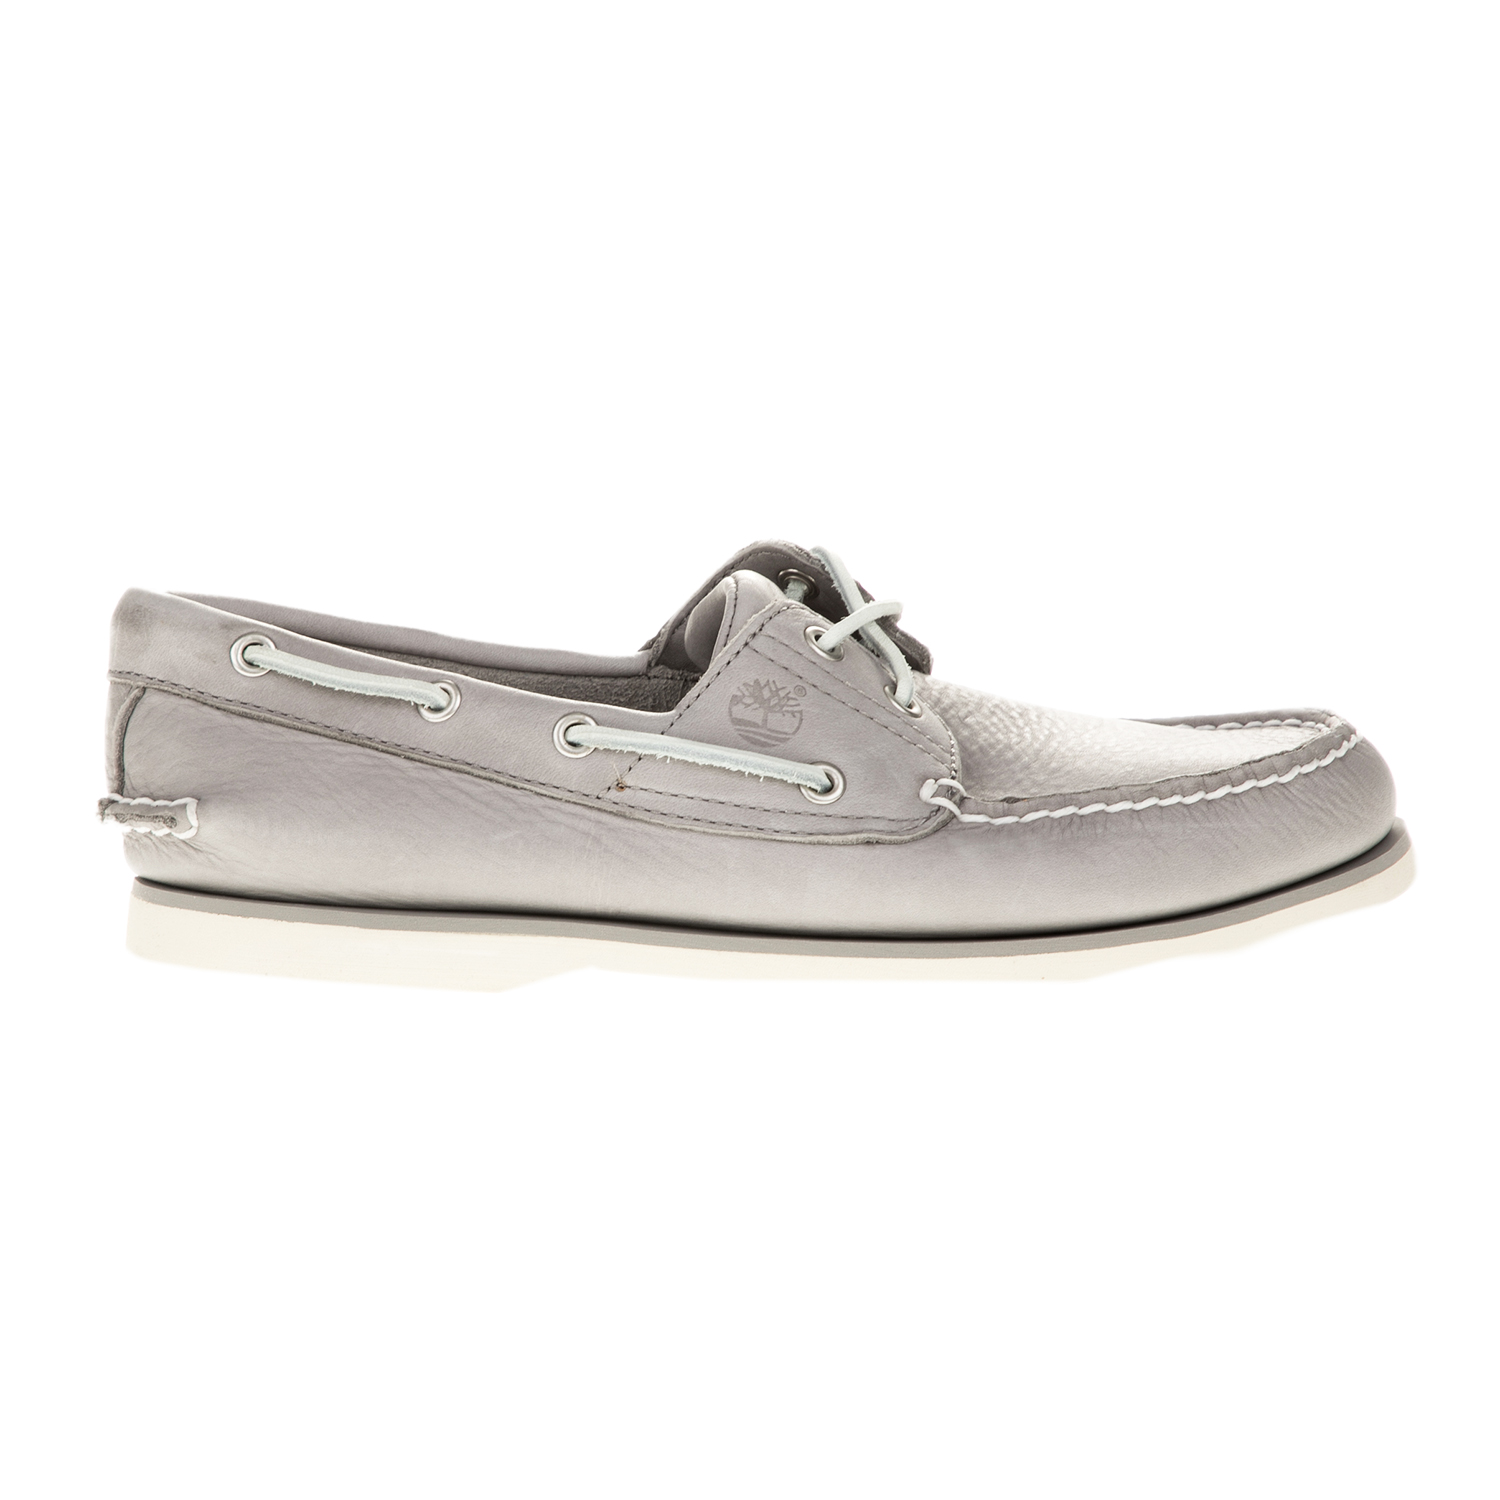 TIMBERLAND - Ανδρικά boat shoes TIMBERLAND A1FI6 γκρι ανδρικά παπούτσια boat shoes